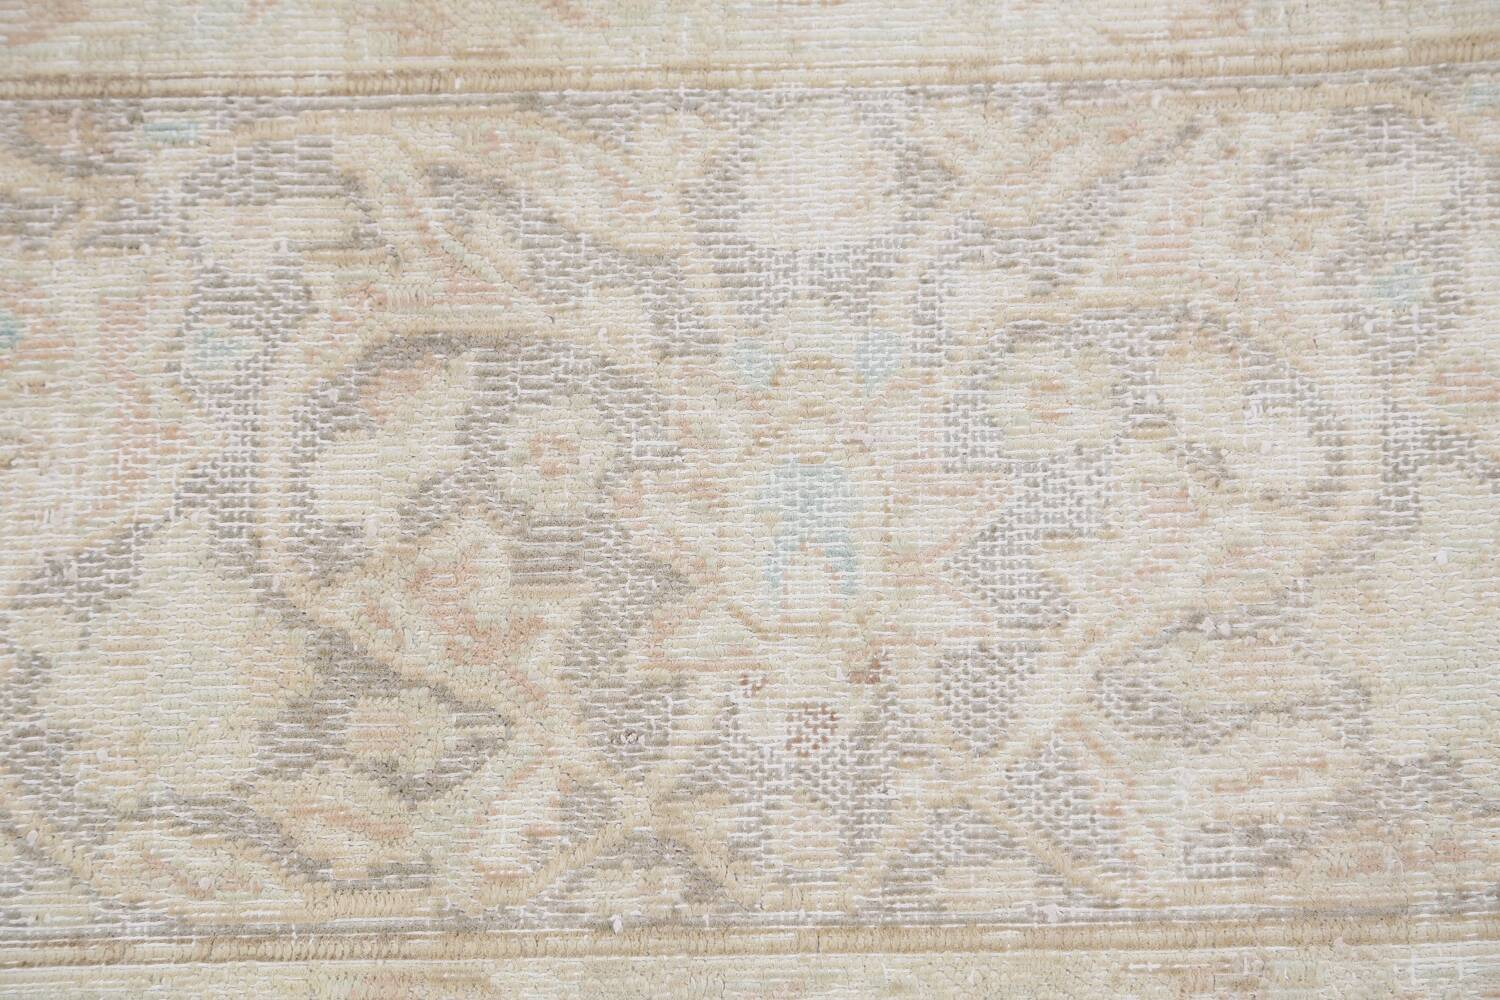 Antique Muted Distressed Kerman Persian Area Rug 10x12 image 9